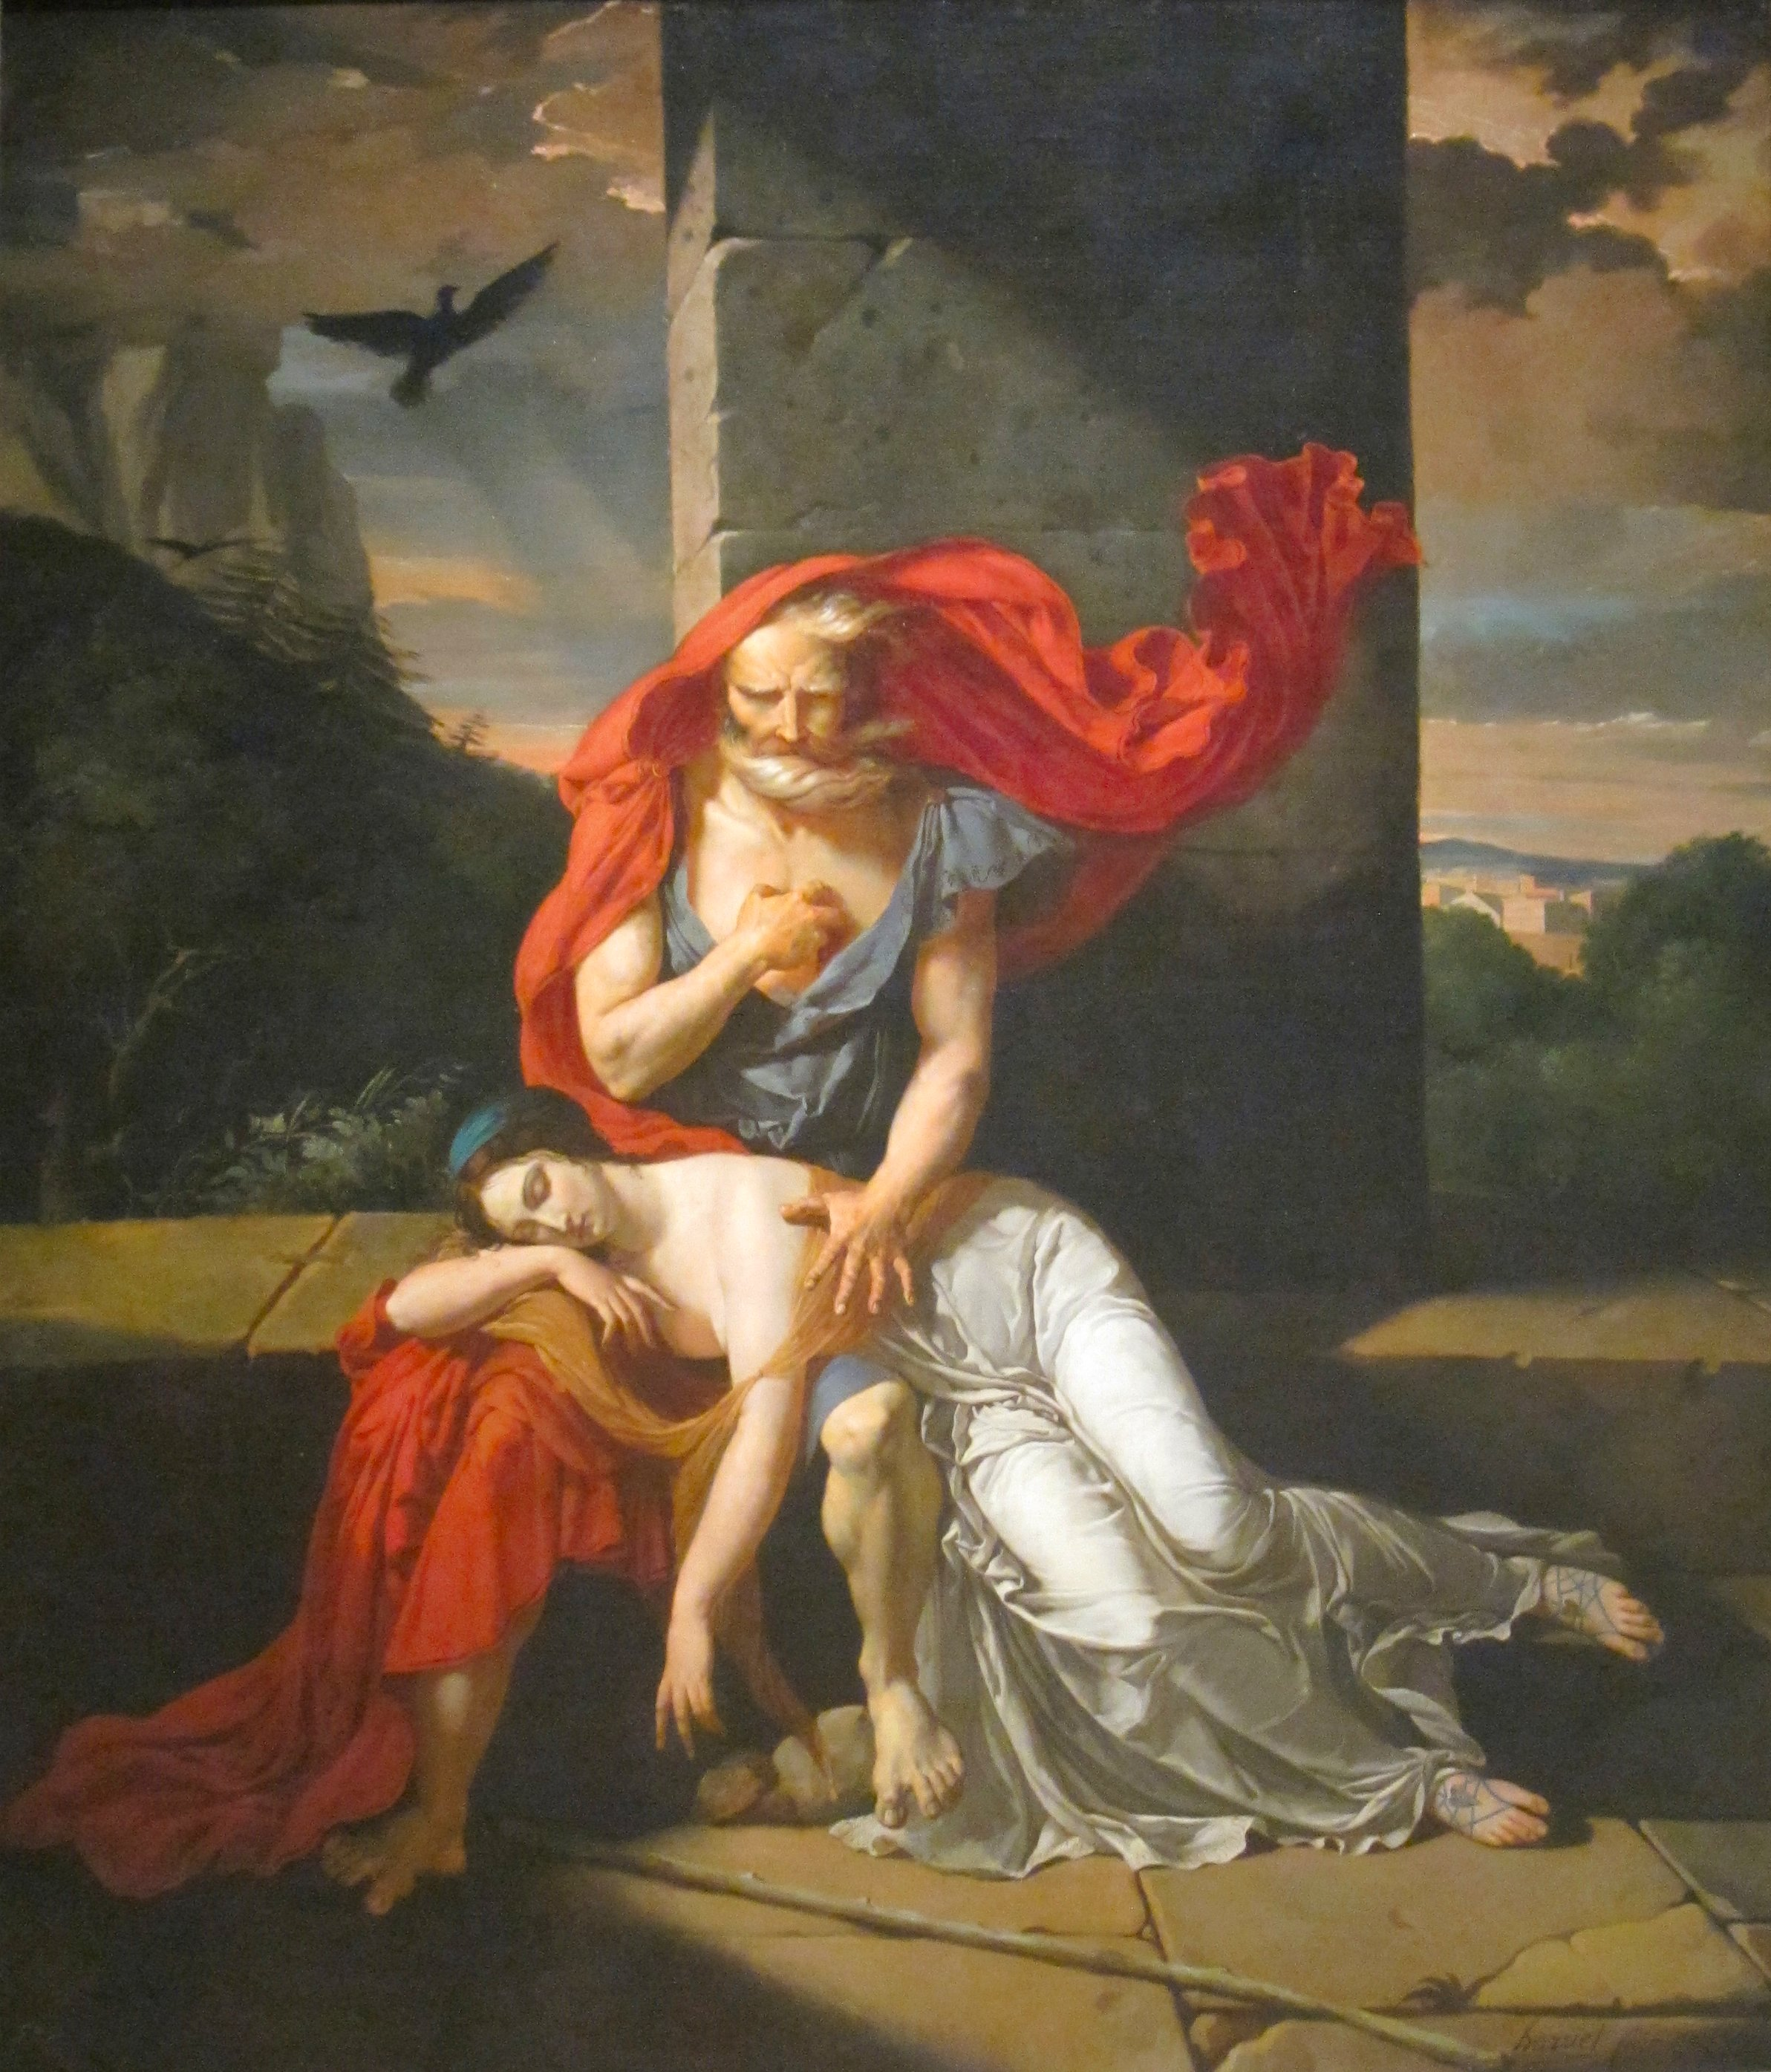 پرونده:Oedipus at Colonus.jpg